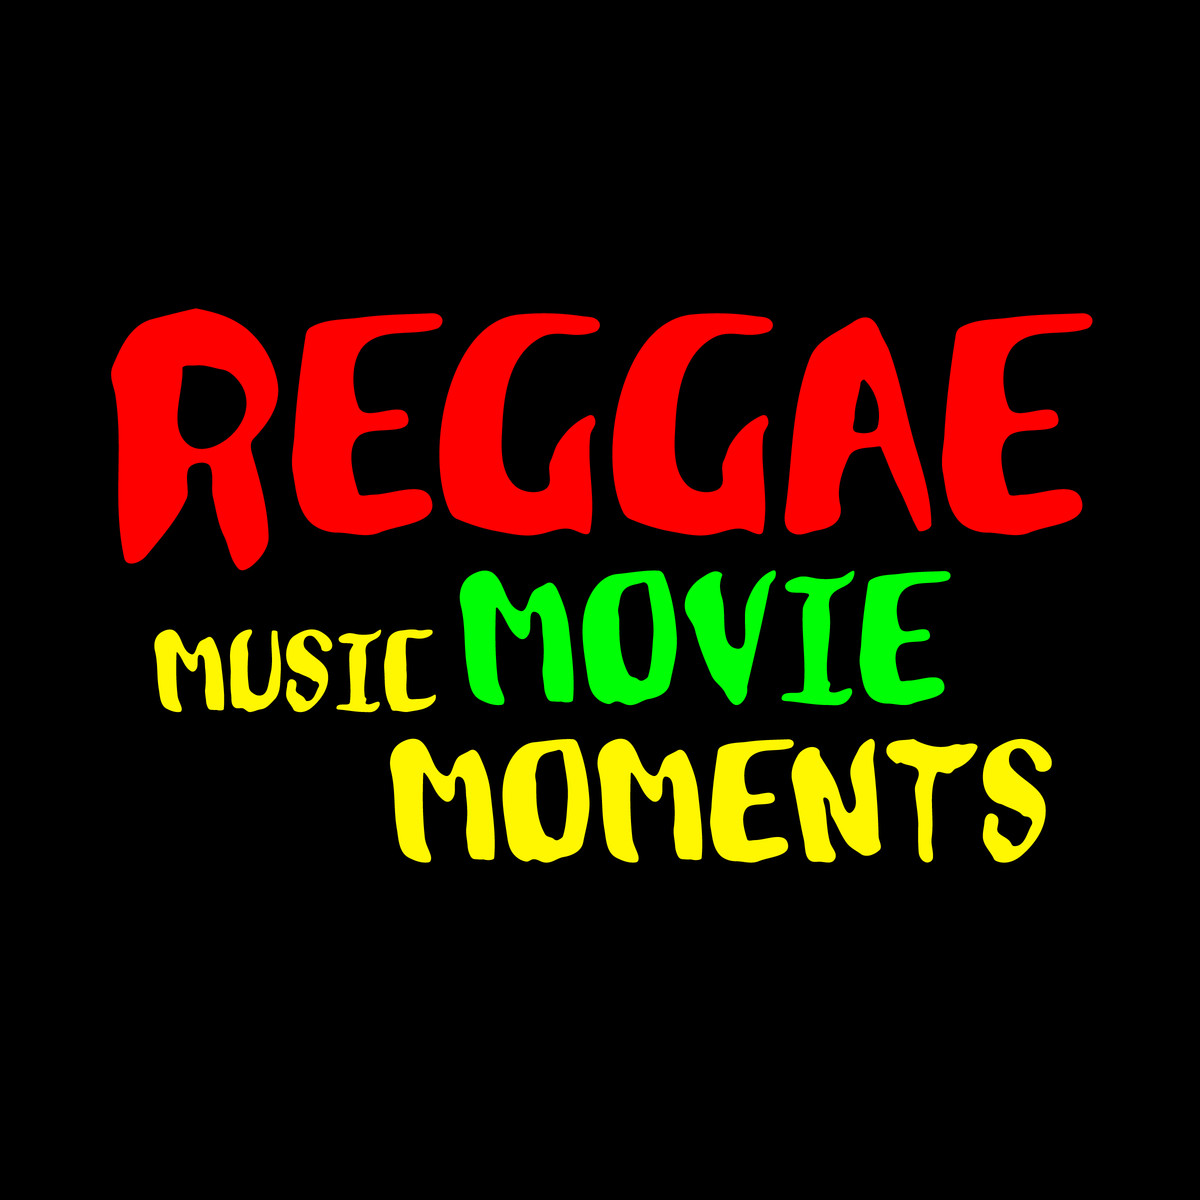 reggae music movie moments